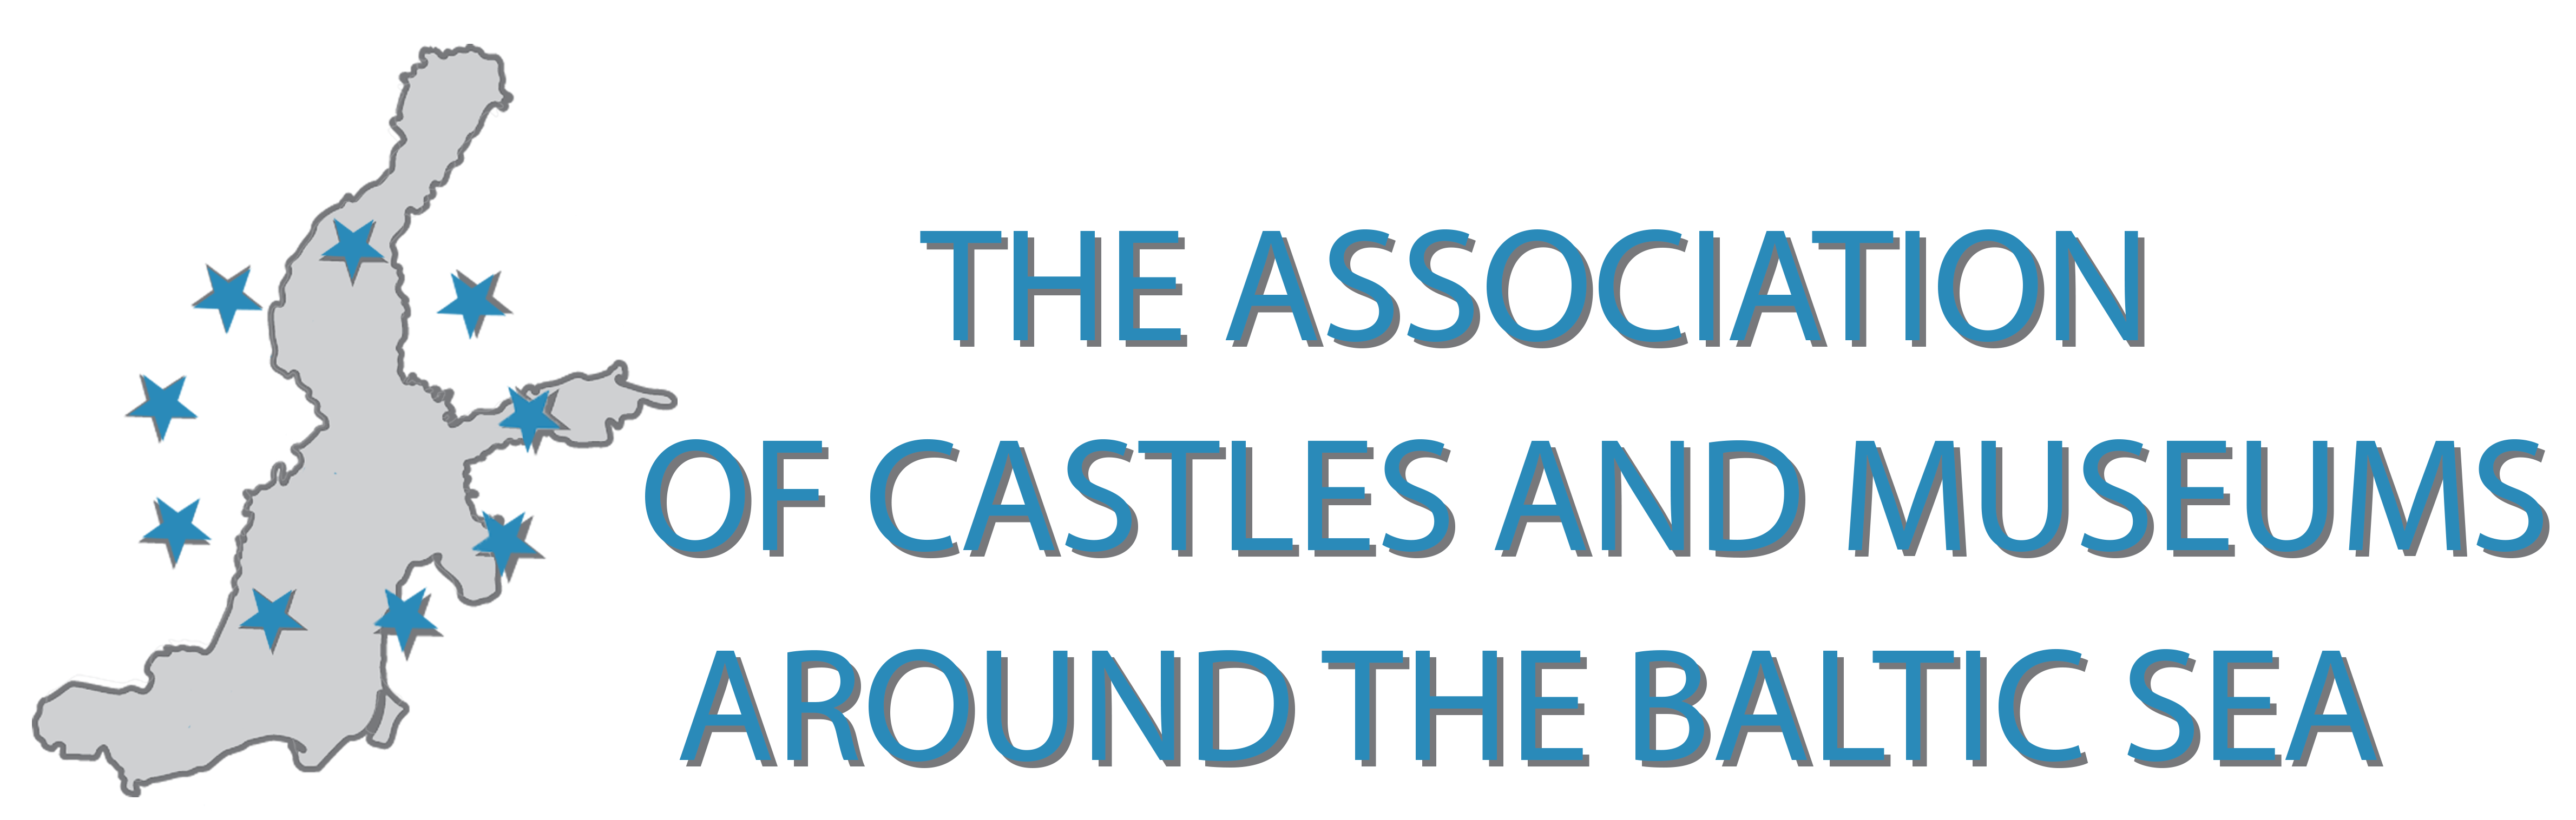 The Association of Castles and Museums around the Baltic Sea